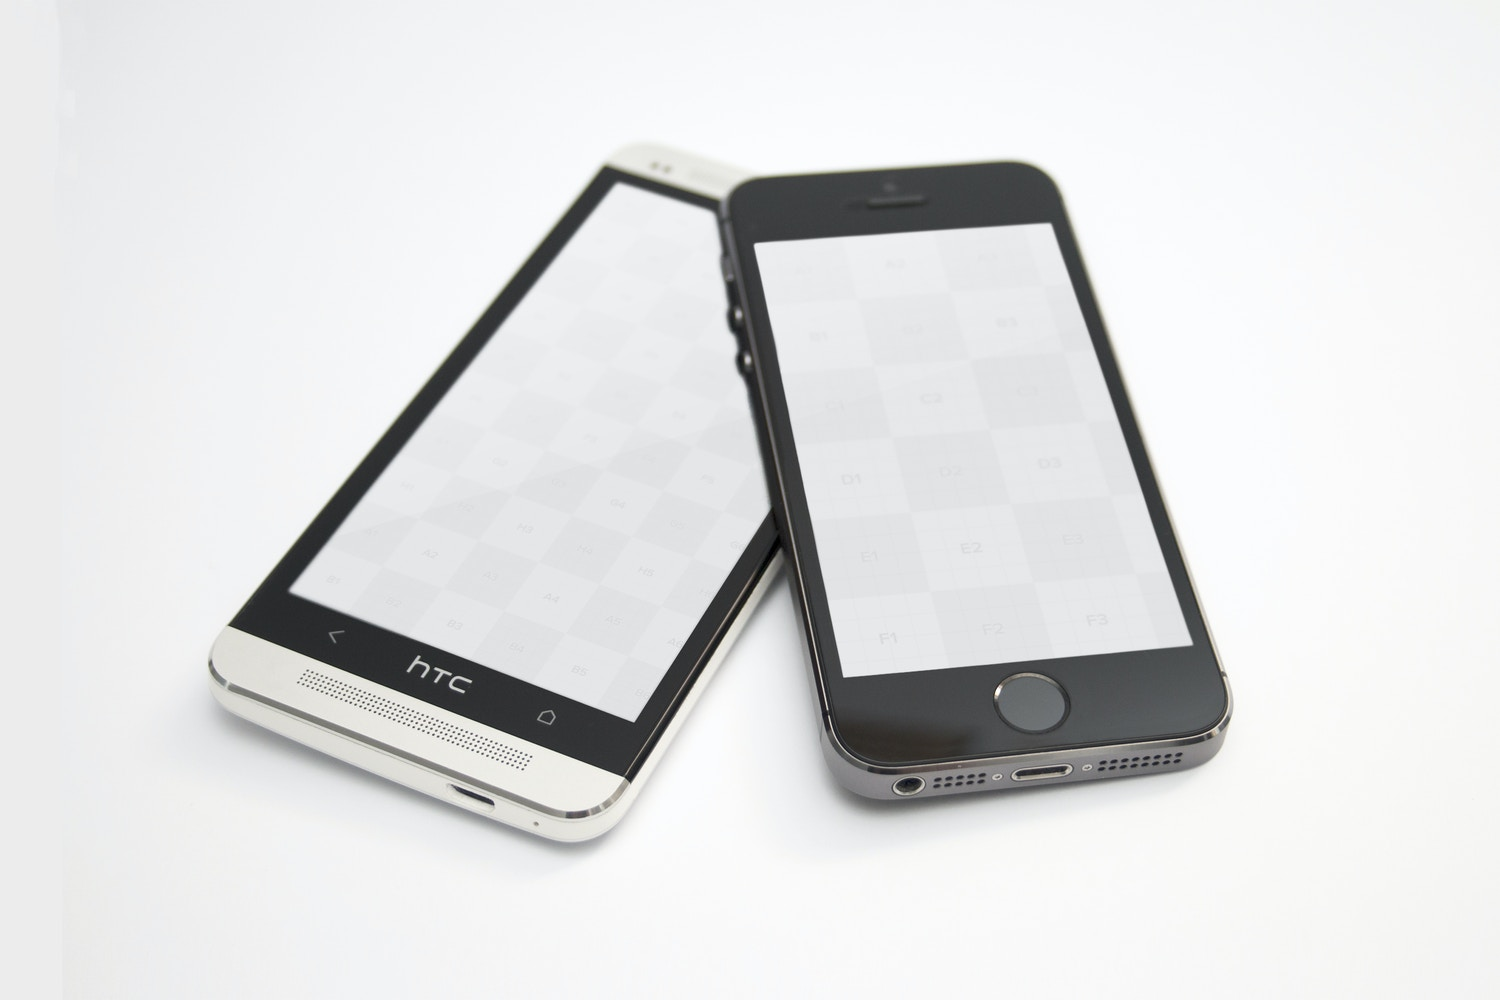 HTC One M7 and iPhone 5s Space Gray Mockup 01